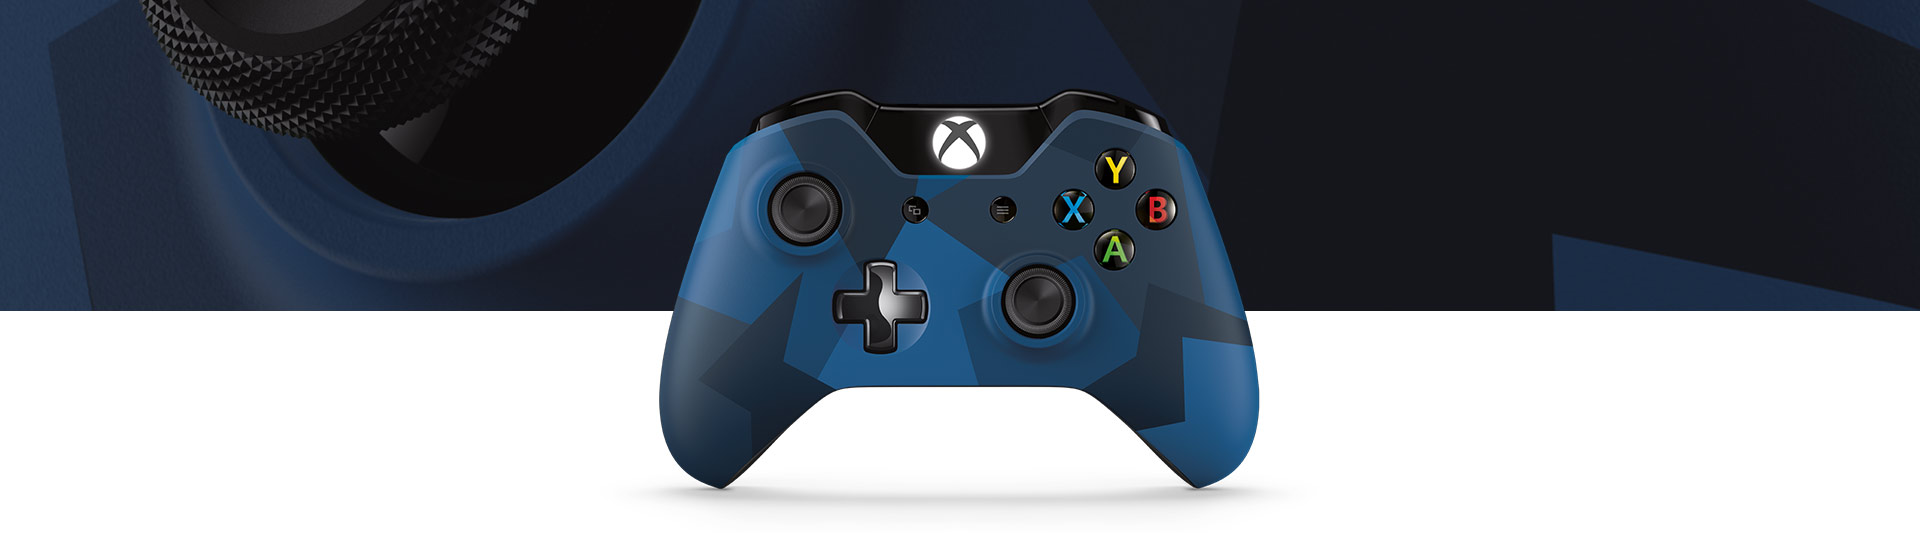 Midnight Forces draadloze controller